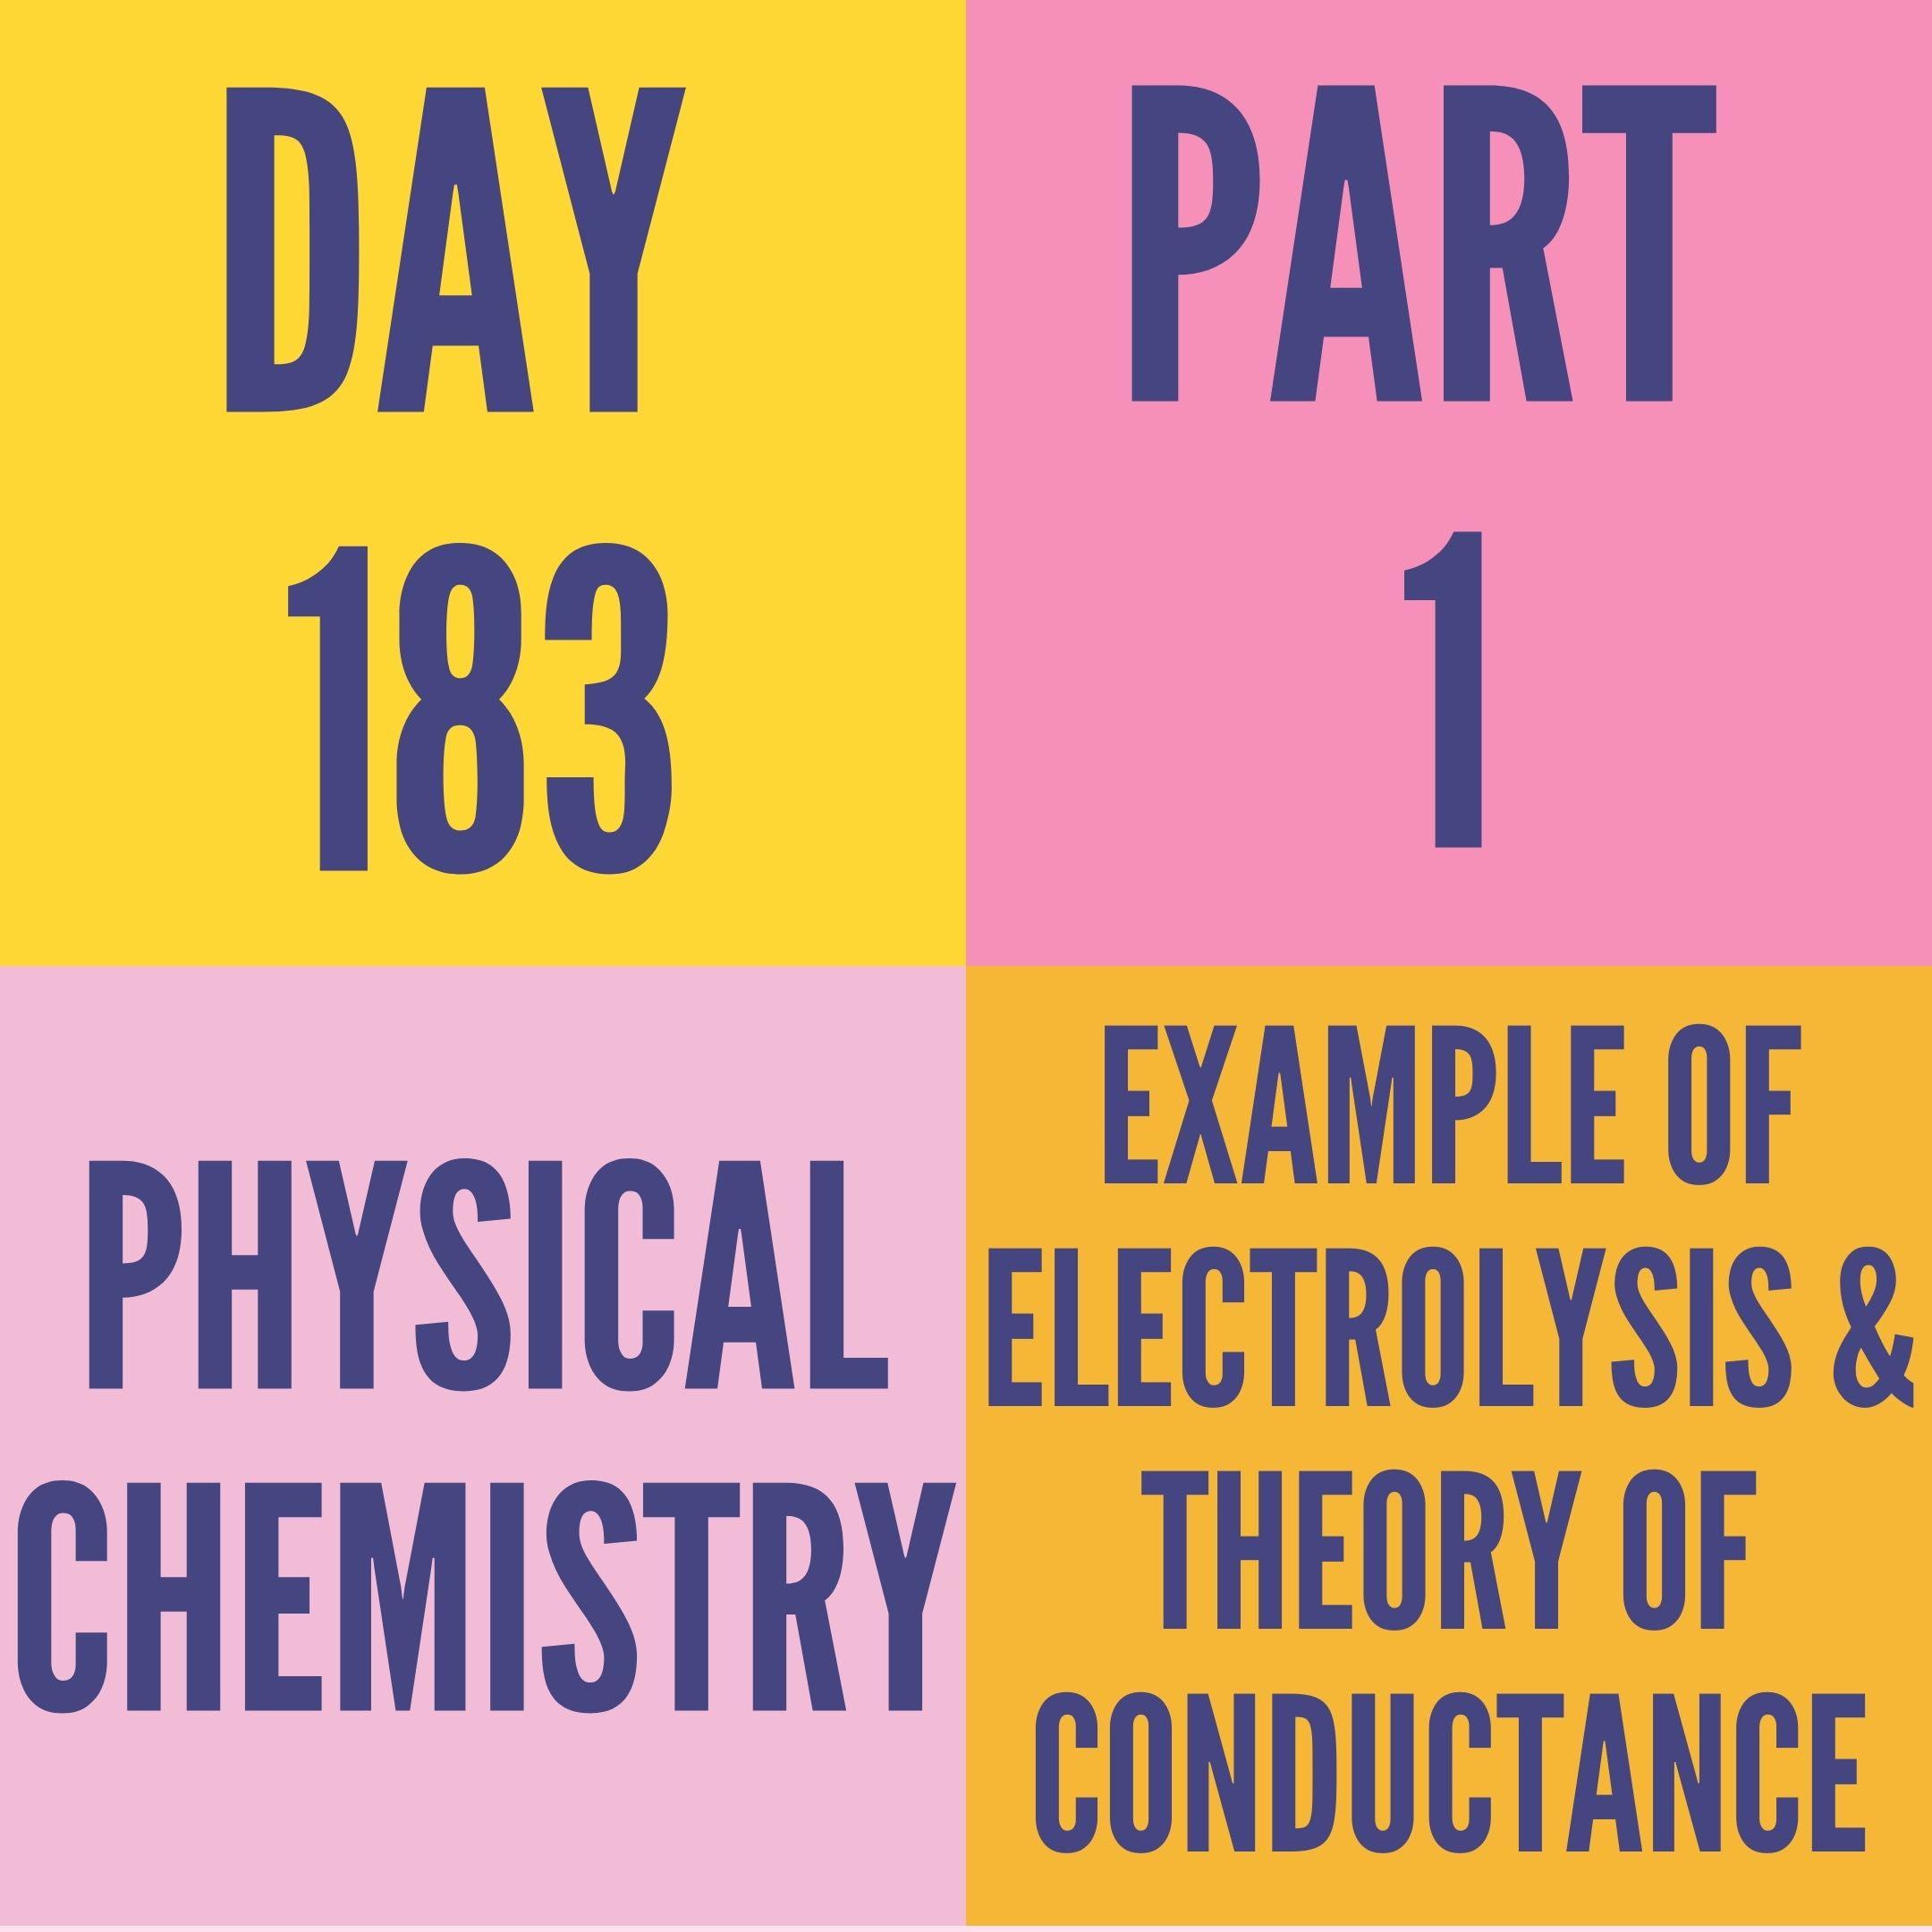 DAY-183 PART-1 EXAMPLE OF ELECTROLYSIS & THEORY OF CONDUCTANCE